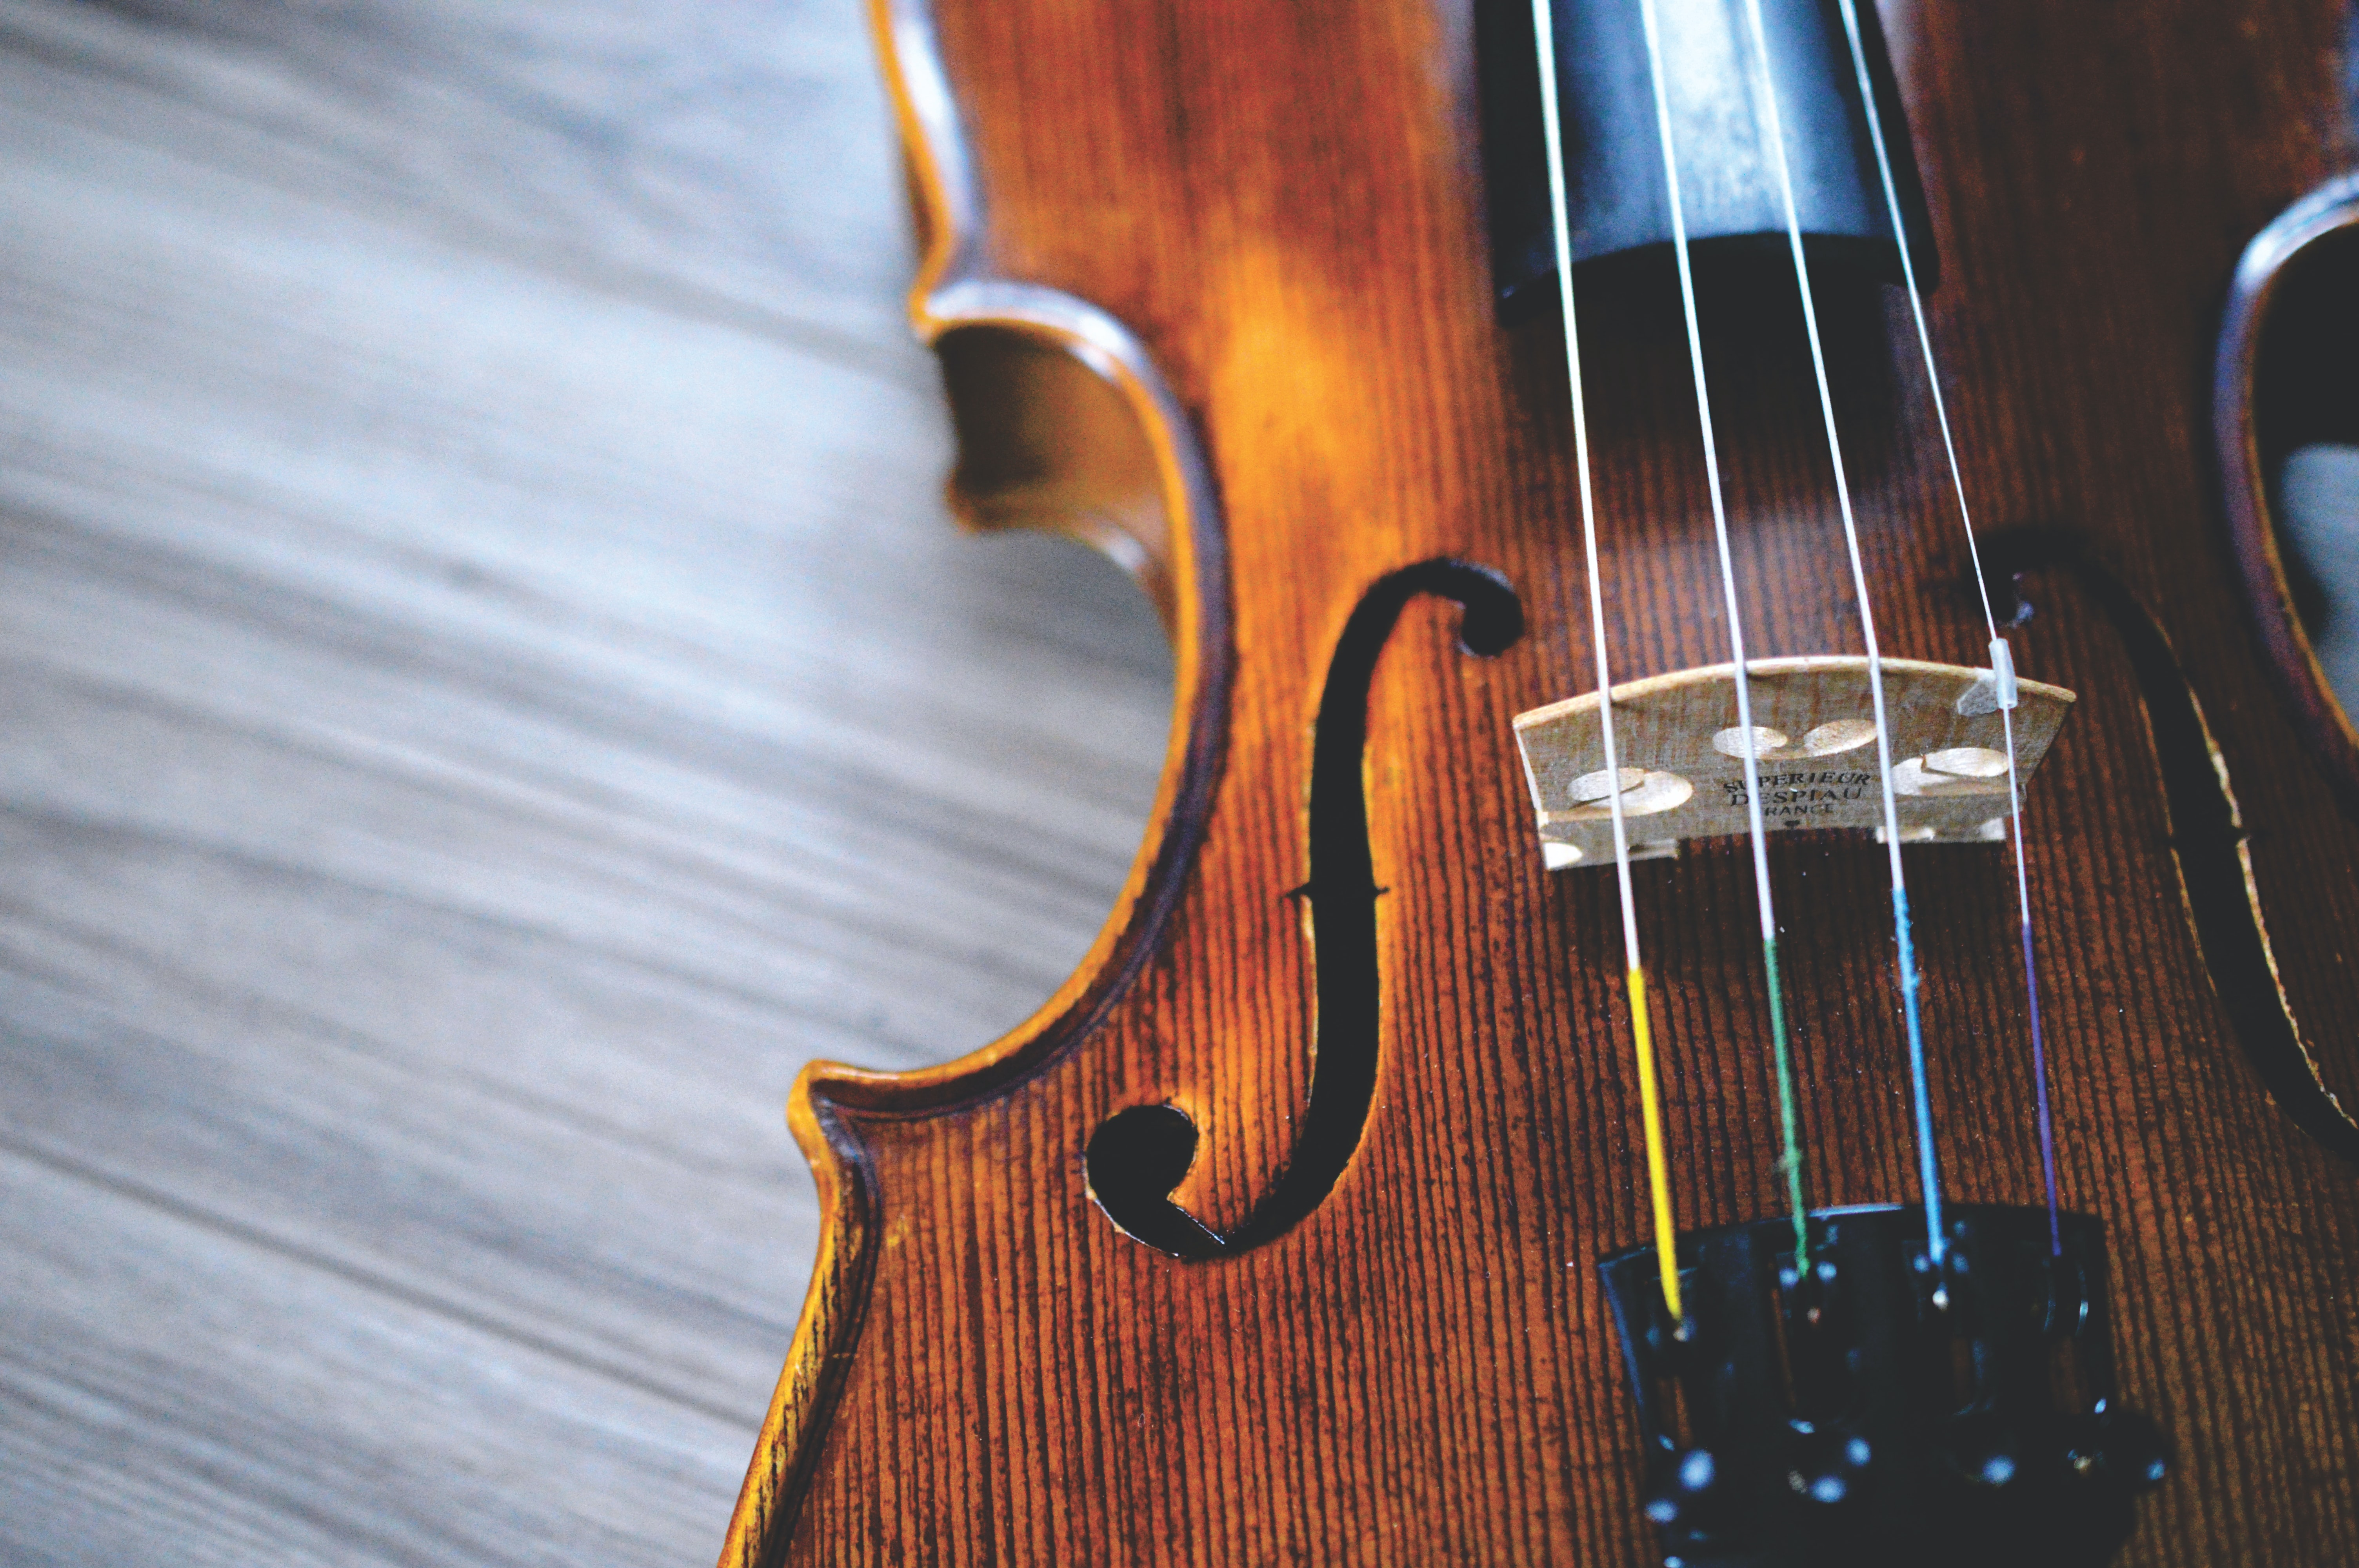 A close-up of a side of a violin